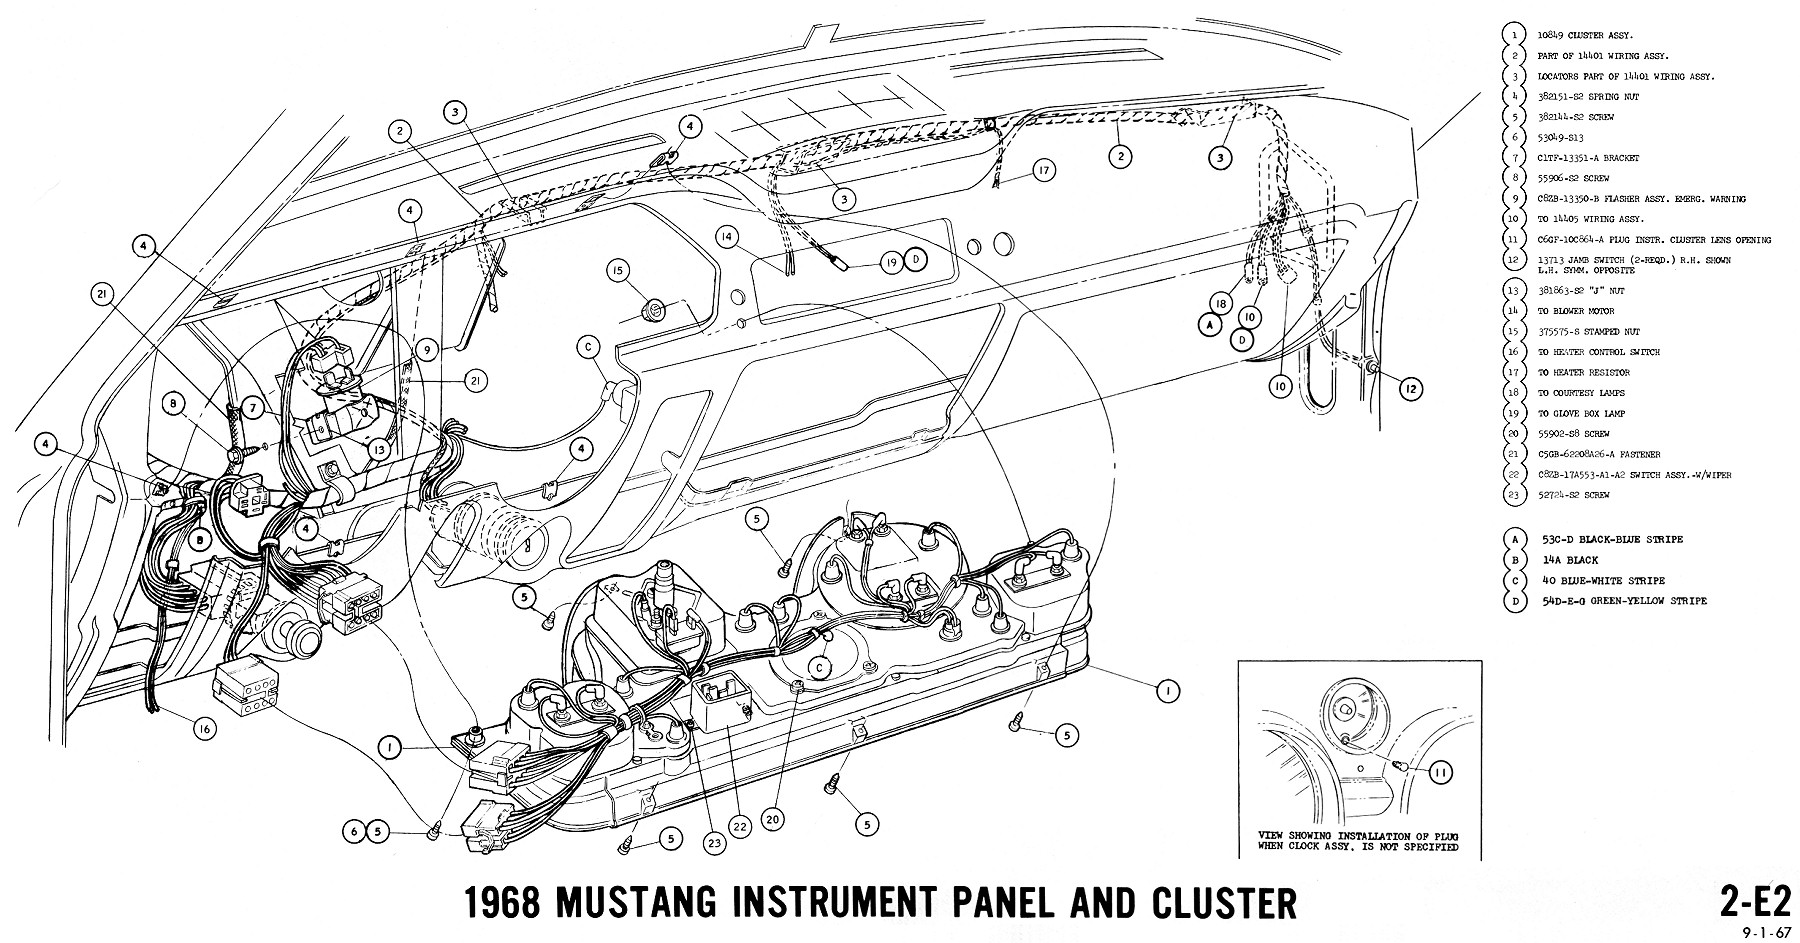 1968 mustang wiring diagram instruments 2 1968 mustang wiring diagrams and vacuum schematics average joe 66 mustang wiring diagram at nearapp.co